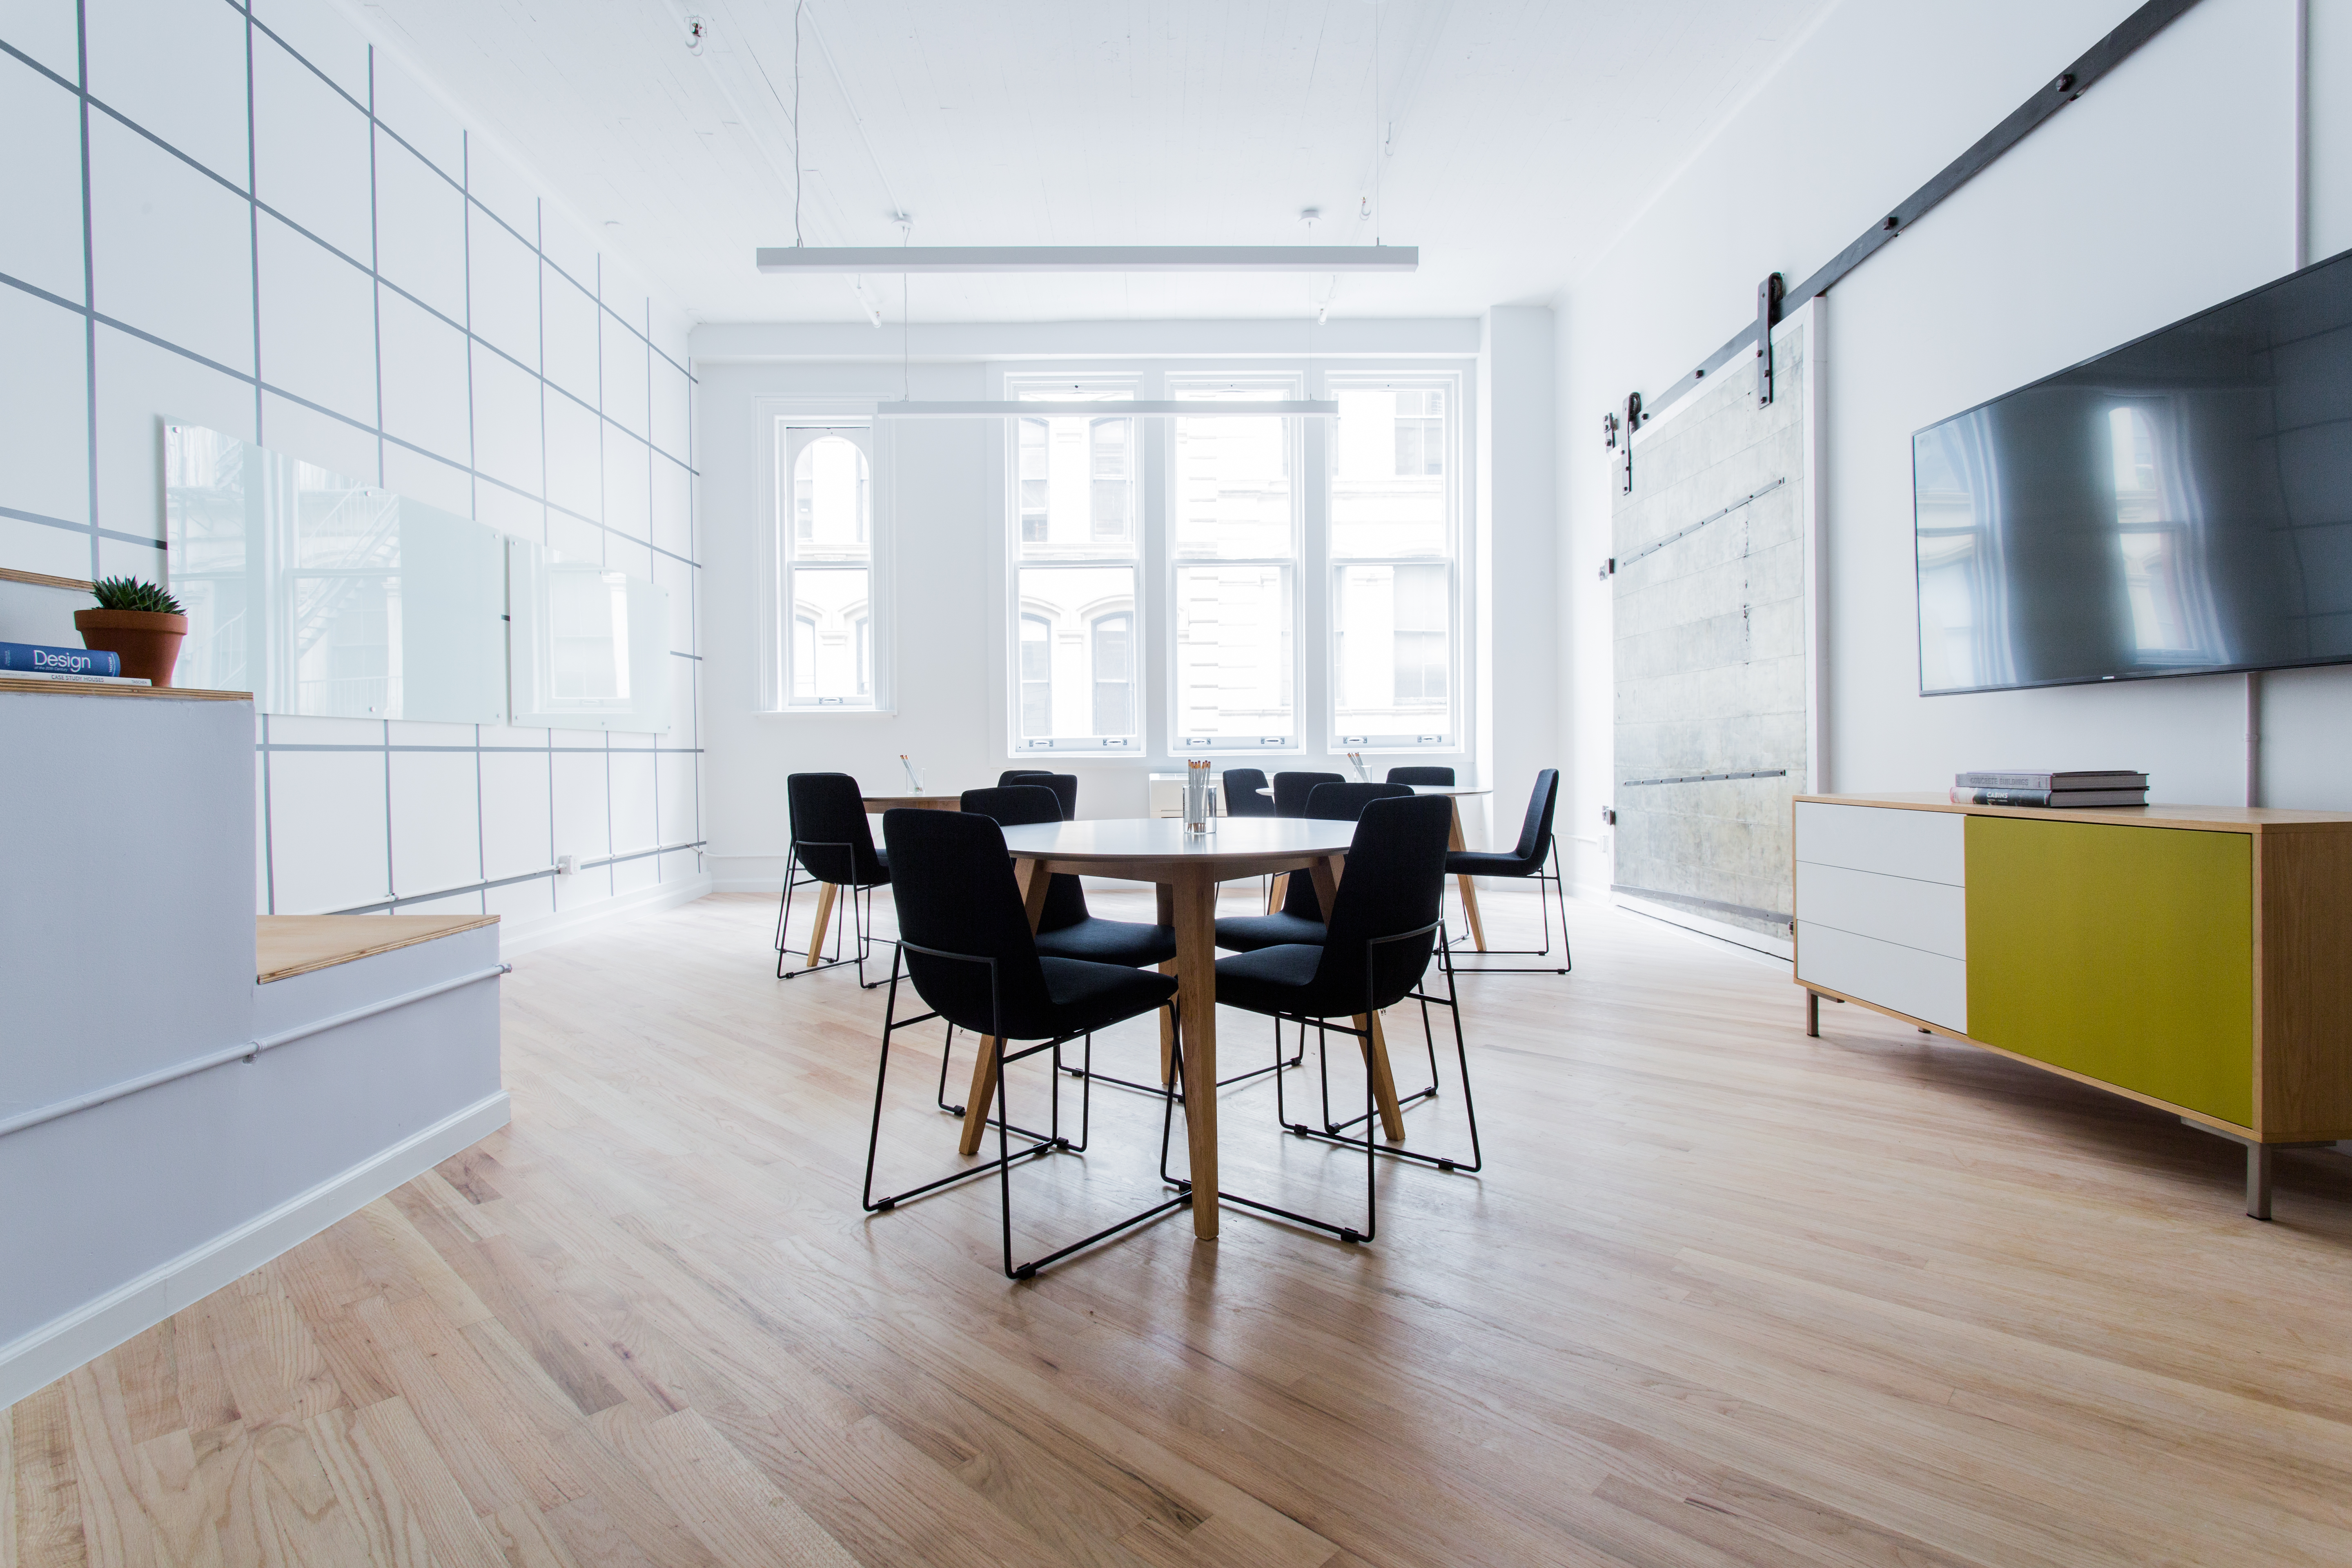 Meeting Rooms in New York City: Hourly Office Space Rentals | Breather